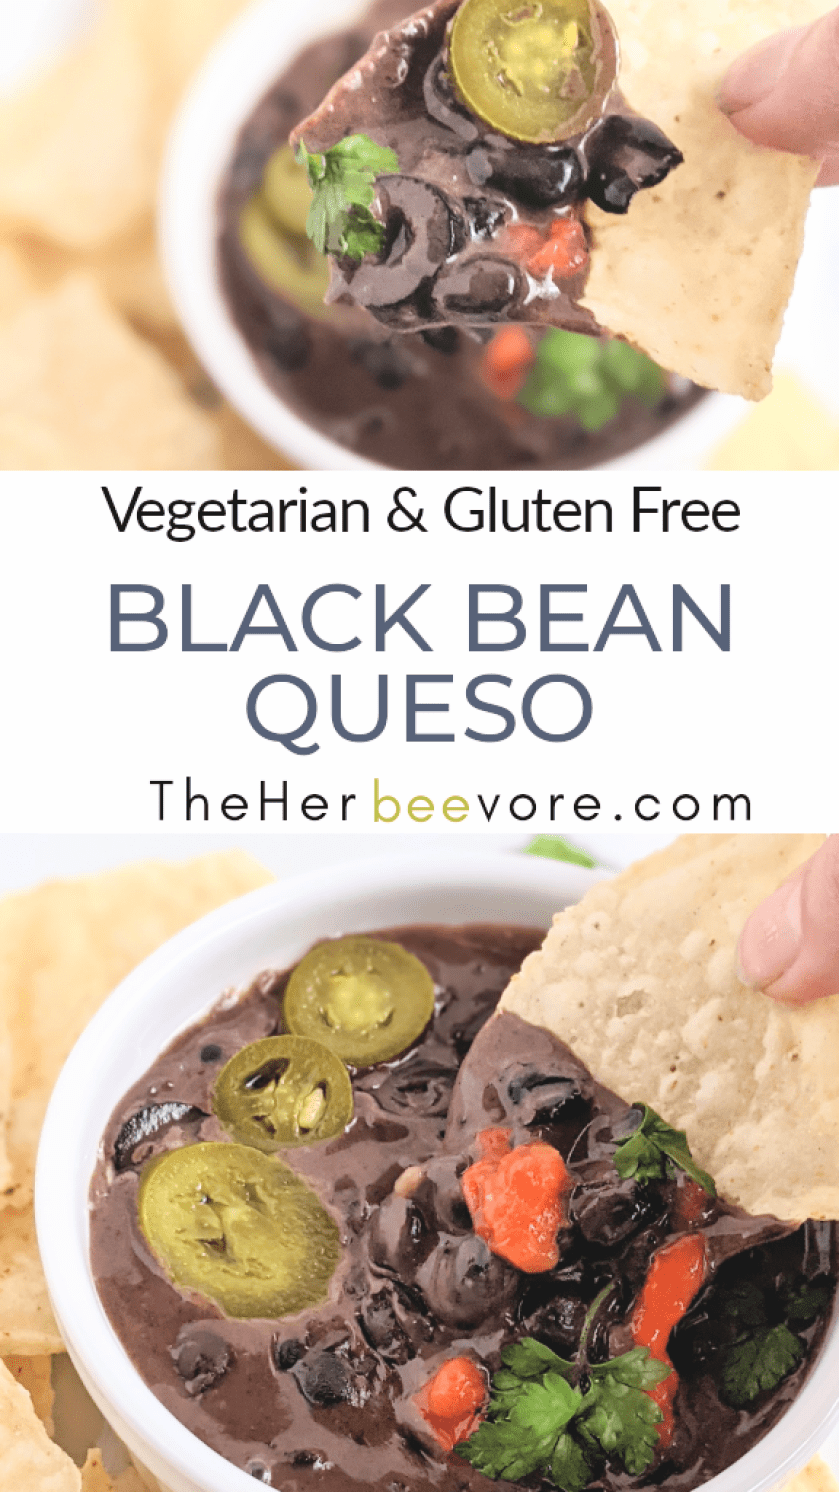 gluten free black bean queso recipe vegetarian high protein vegan option queso plant based healthy party dip appetizer recipe